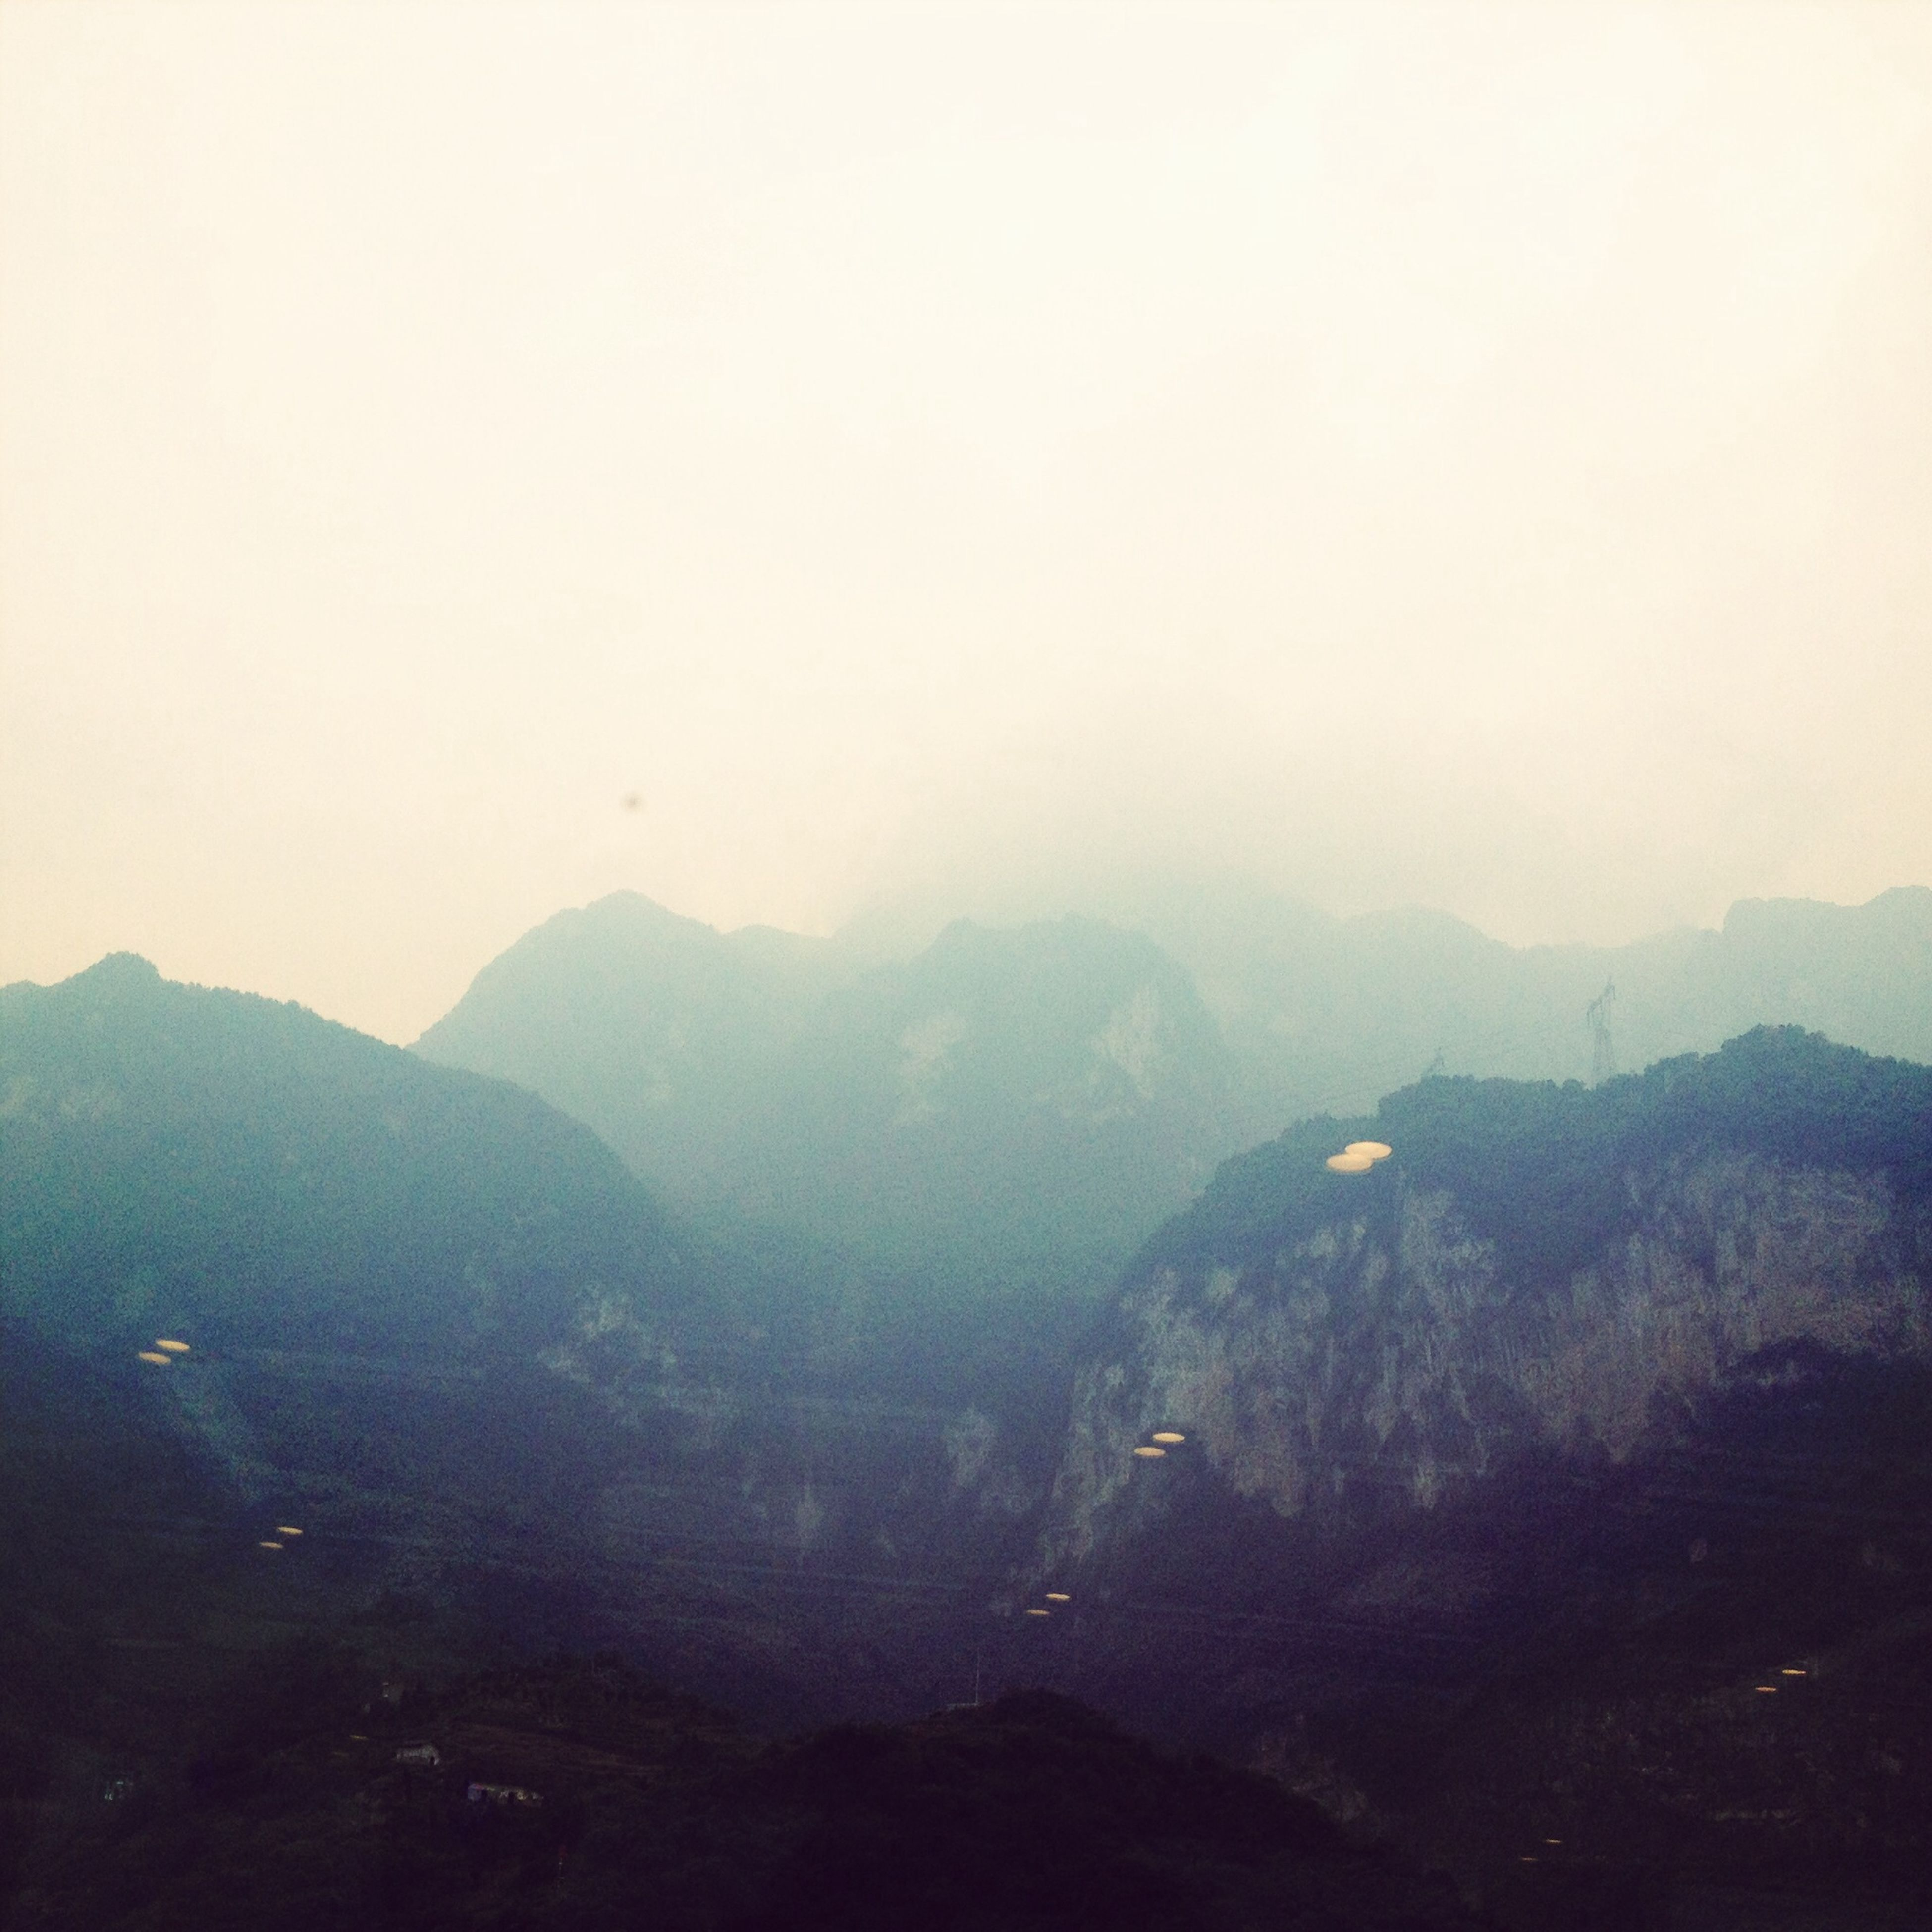 mountain, scenics, tranquil scene, tranquility, mountain range, beauty in nature, fog, nature, landscape, copy space, idyllic, non-urban scene, foggy, sky, physical geography, remote, outdoors, weather, water